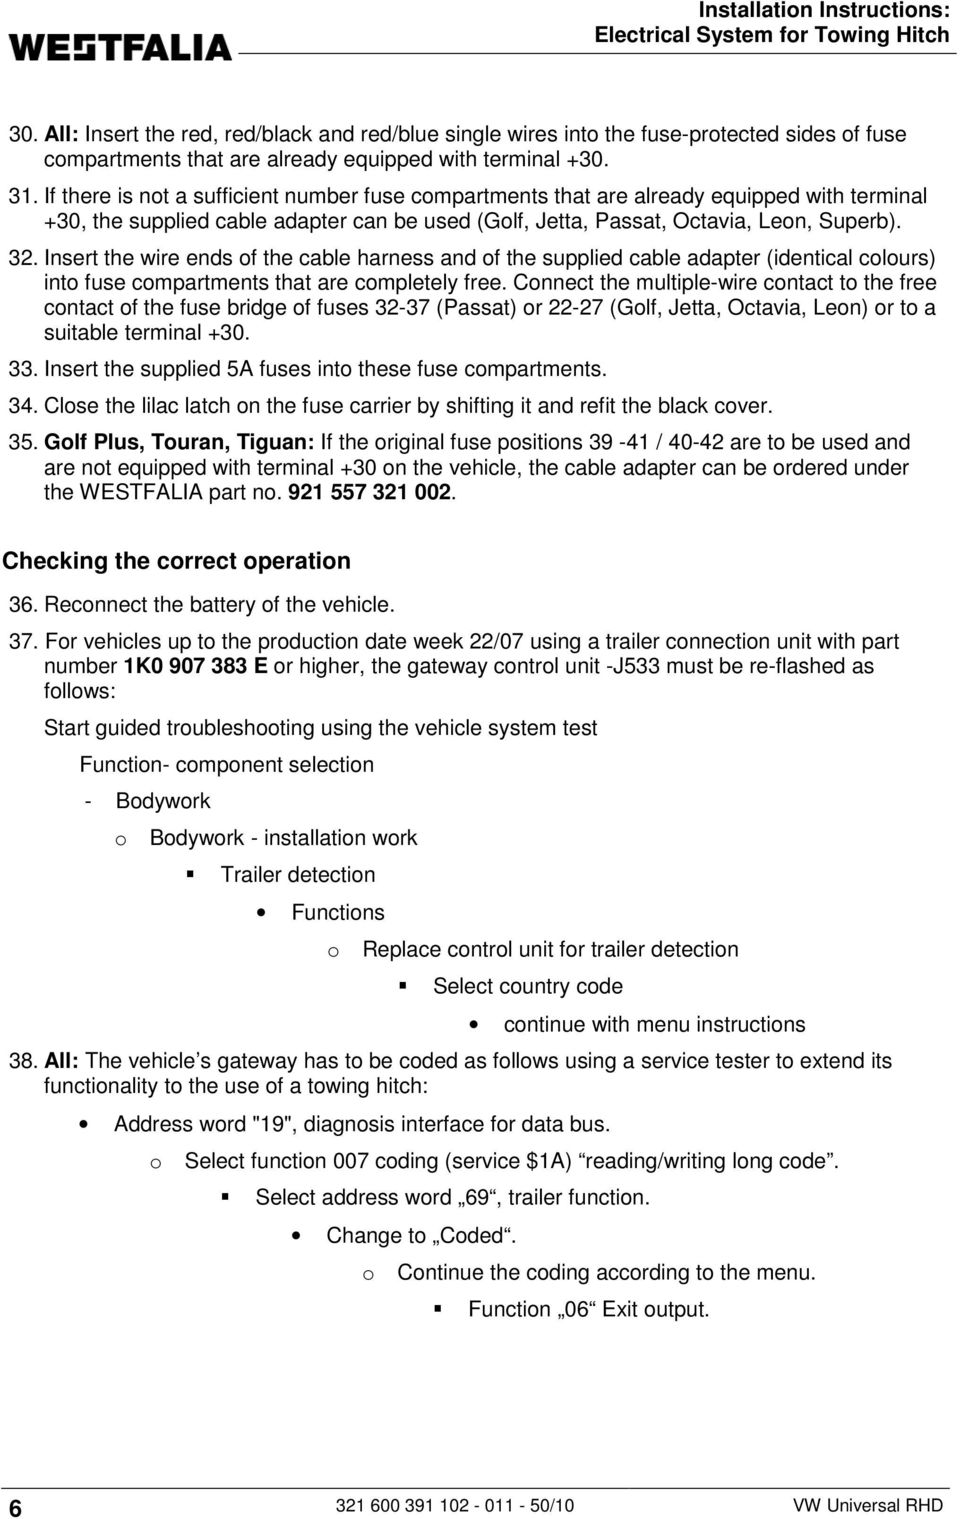 Installation Instructions: Electrical System for Towing Hitch - PDF